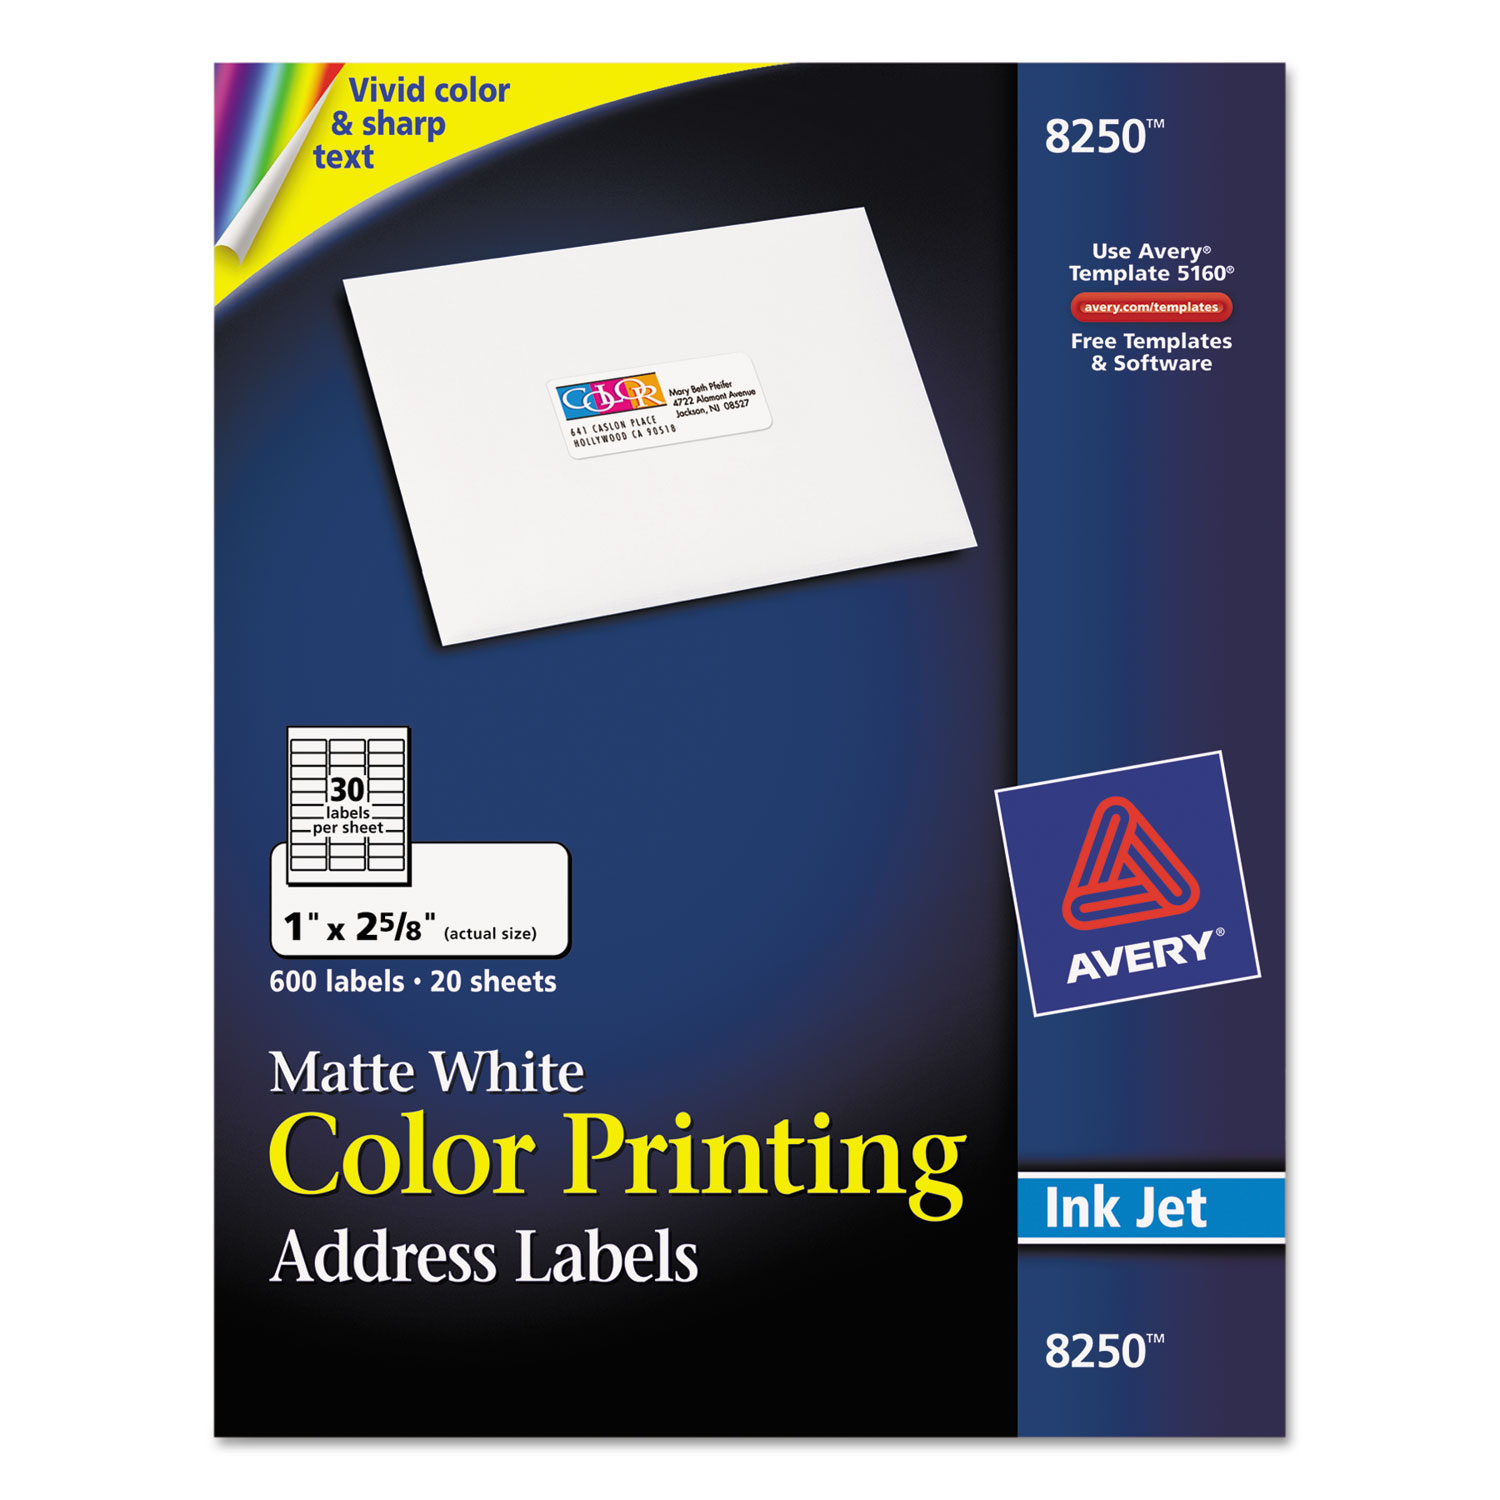 staples white mailing labels template - vibrant color printing address labels by avery ave8250